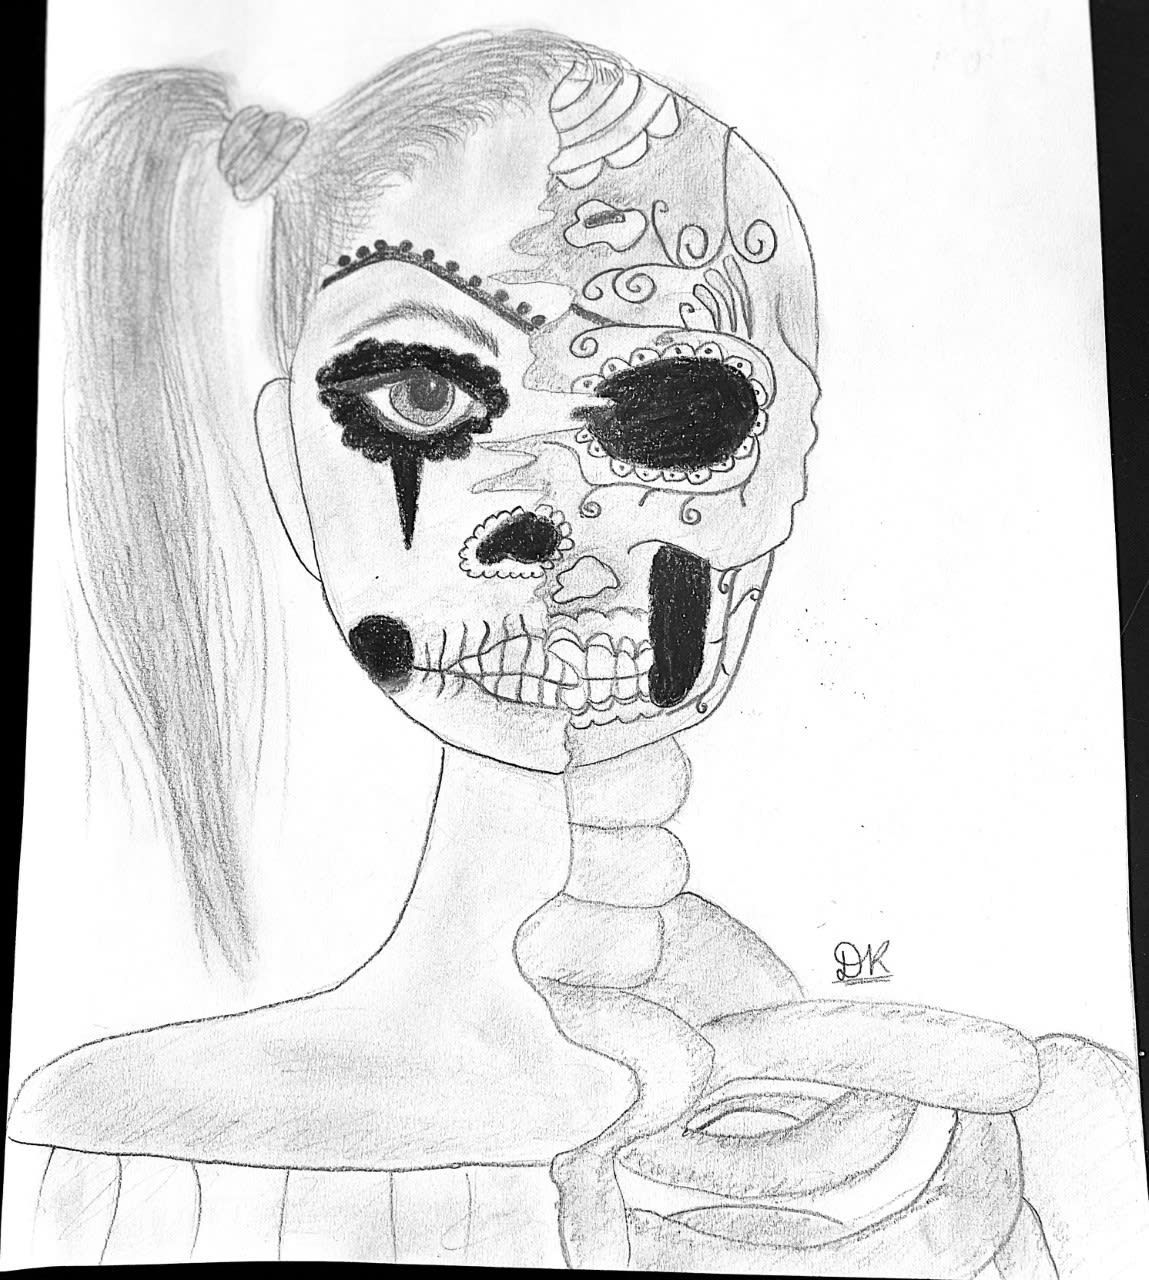 Dhriti Kulkarni, age 11 Inspired by Pablo Picasso, Banksy and Andy Warhol